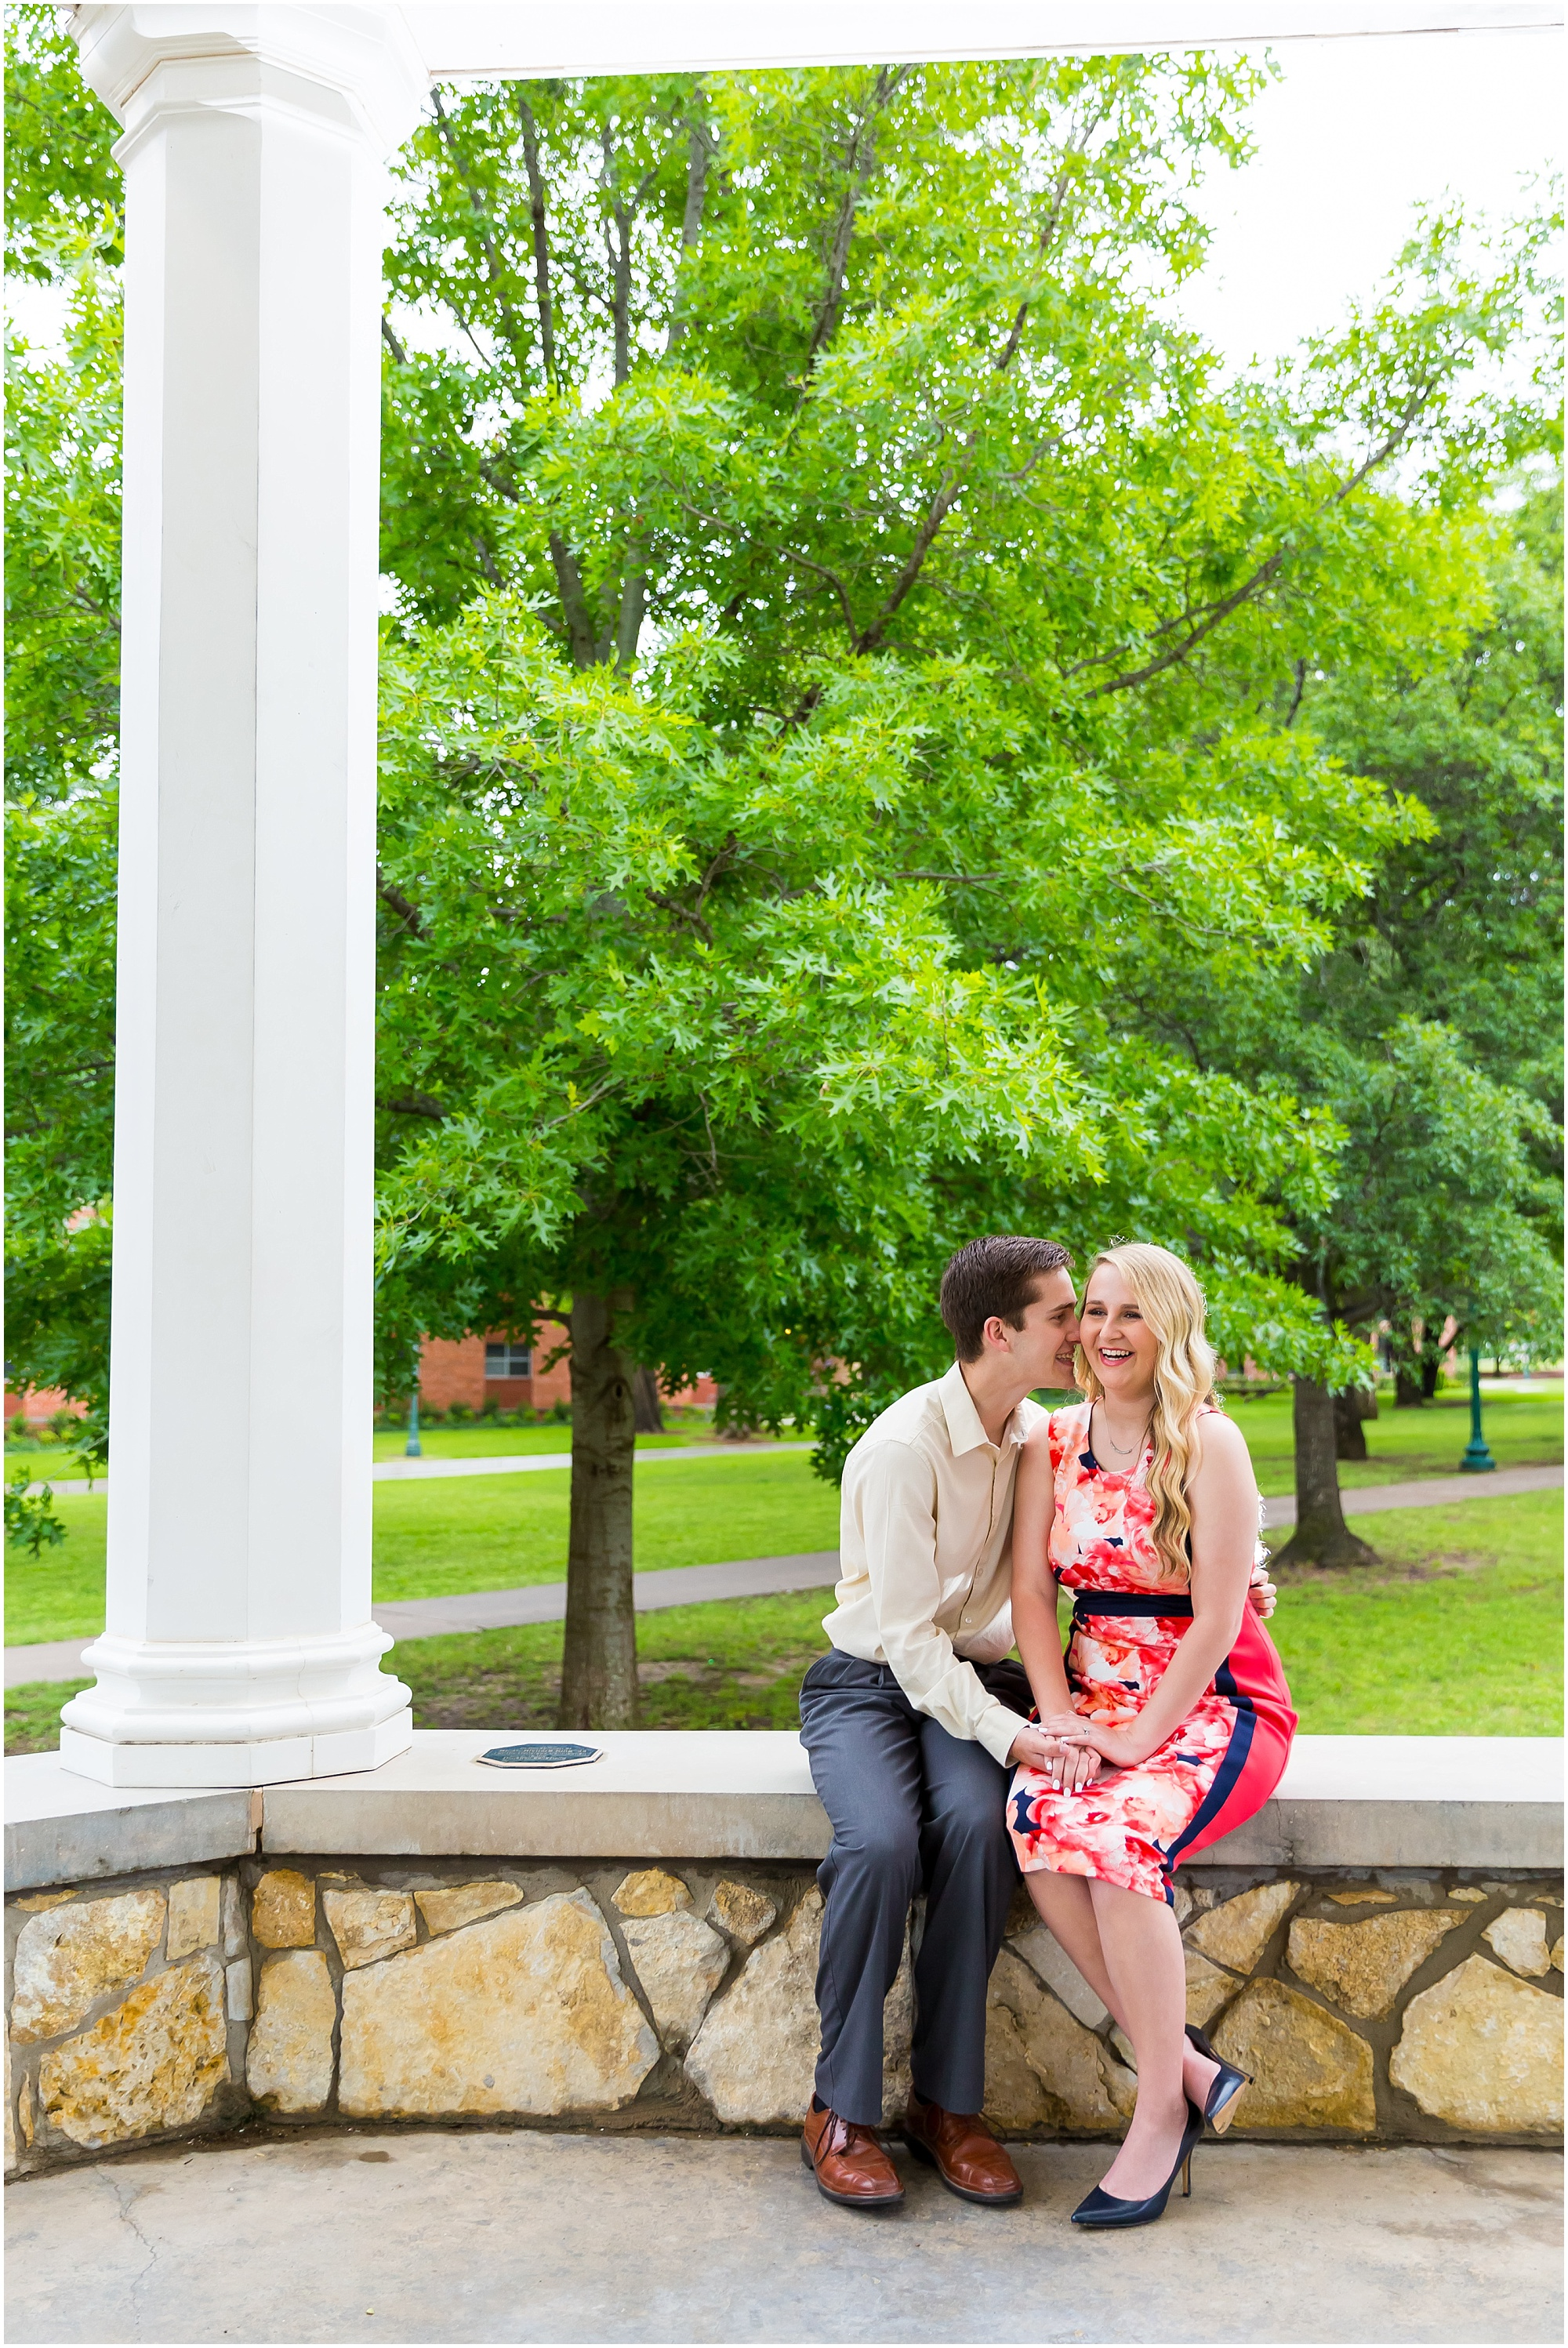 A man whispers into his fiance's ear and she laughs during their engagement session - Tarleton State University - - Jason & Melaina Photography - www.jasonandmelaina.com